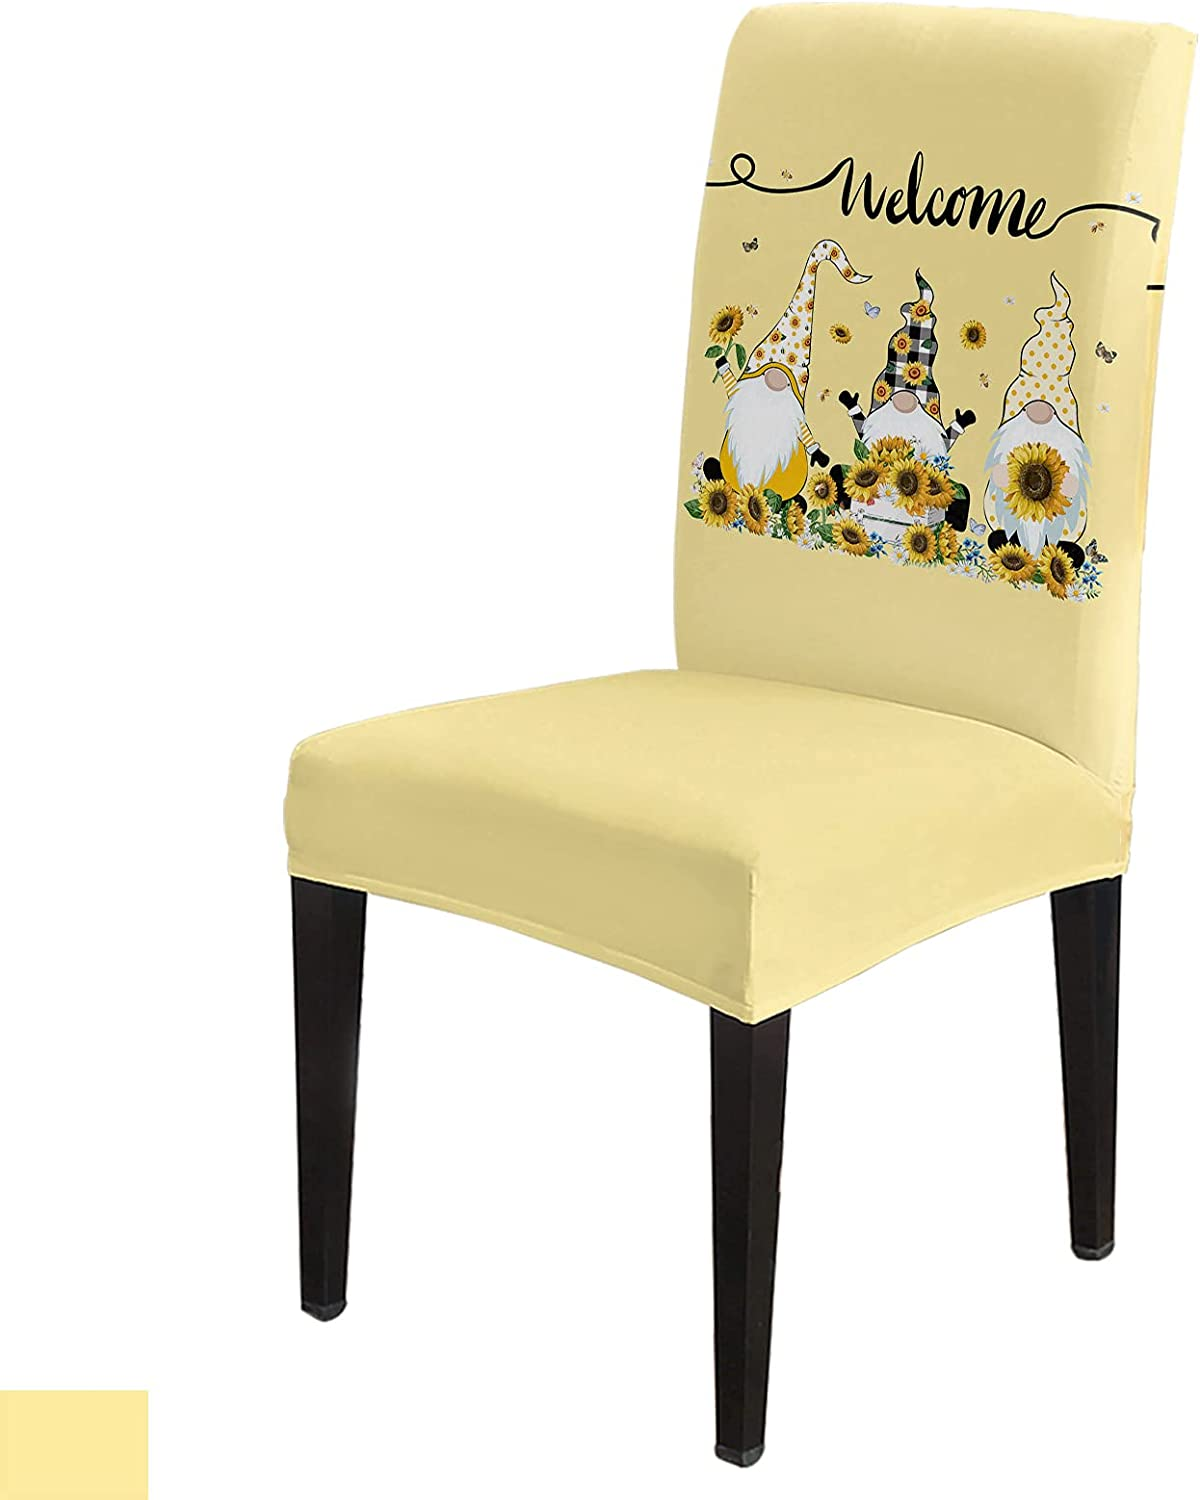 Funny Spring new work one after another Gnome Award Chair Slip Covers Protecto Stretchable Dining